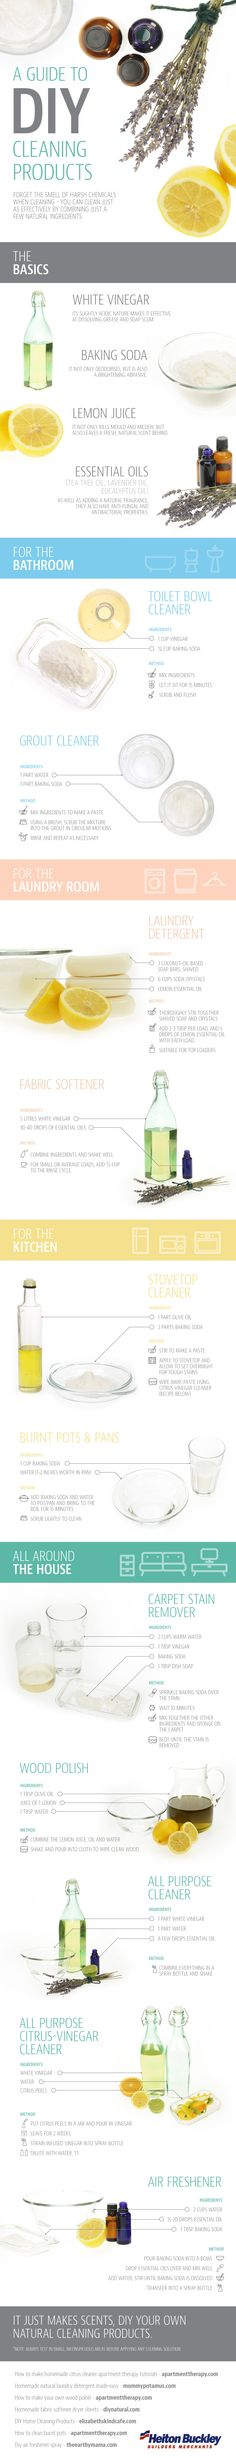 A Guide To Diy Cleaning Products - Infographic